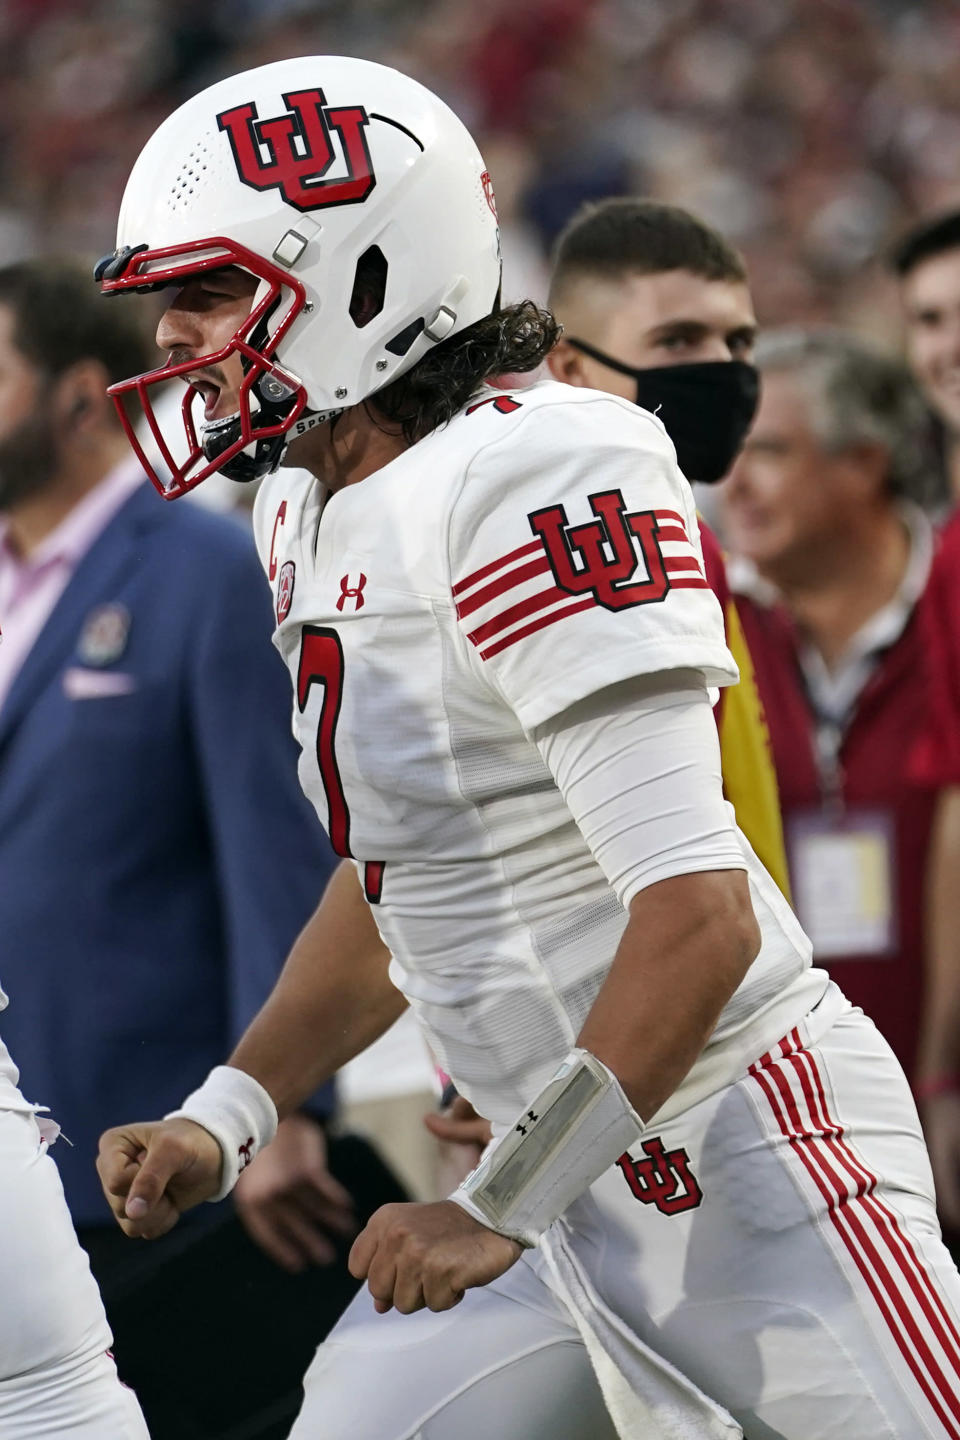 Utah quarterback Cameron Rising celebrates after throwing a touchdown pass to wide receiver Money Parks during the first half of an NCAA college football game against Southern California Saturday, Oct. 9, 2021, in Los Angeles. (AP Photo/Marcio Jose Sanchez)